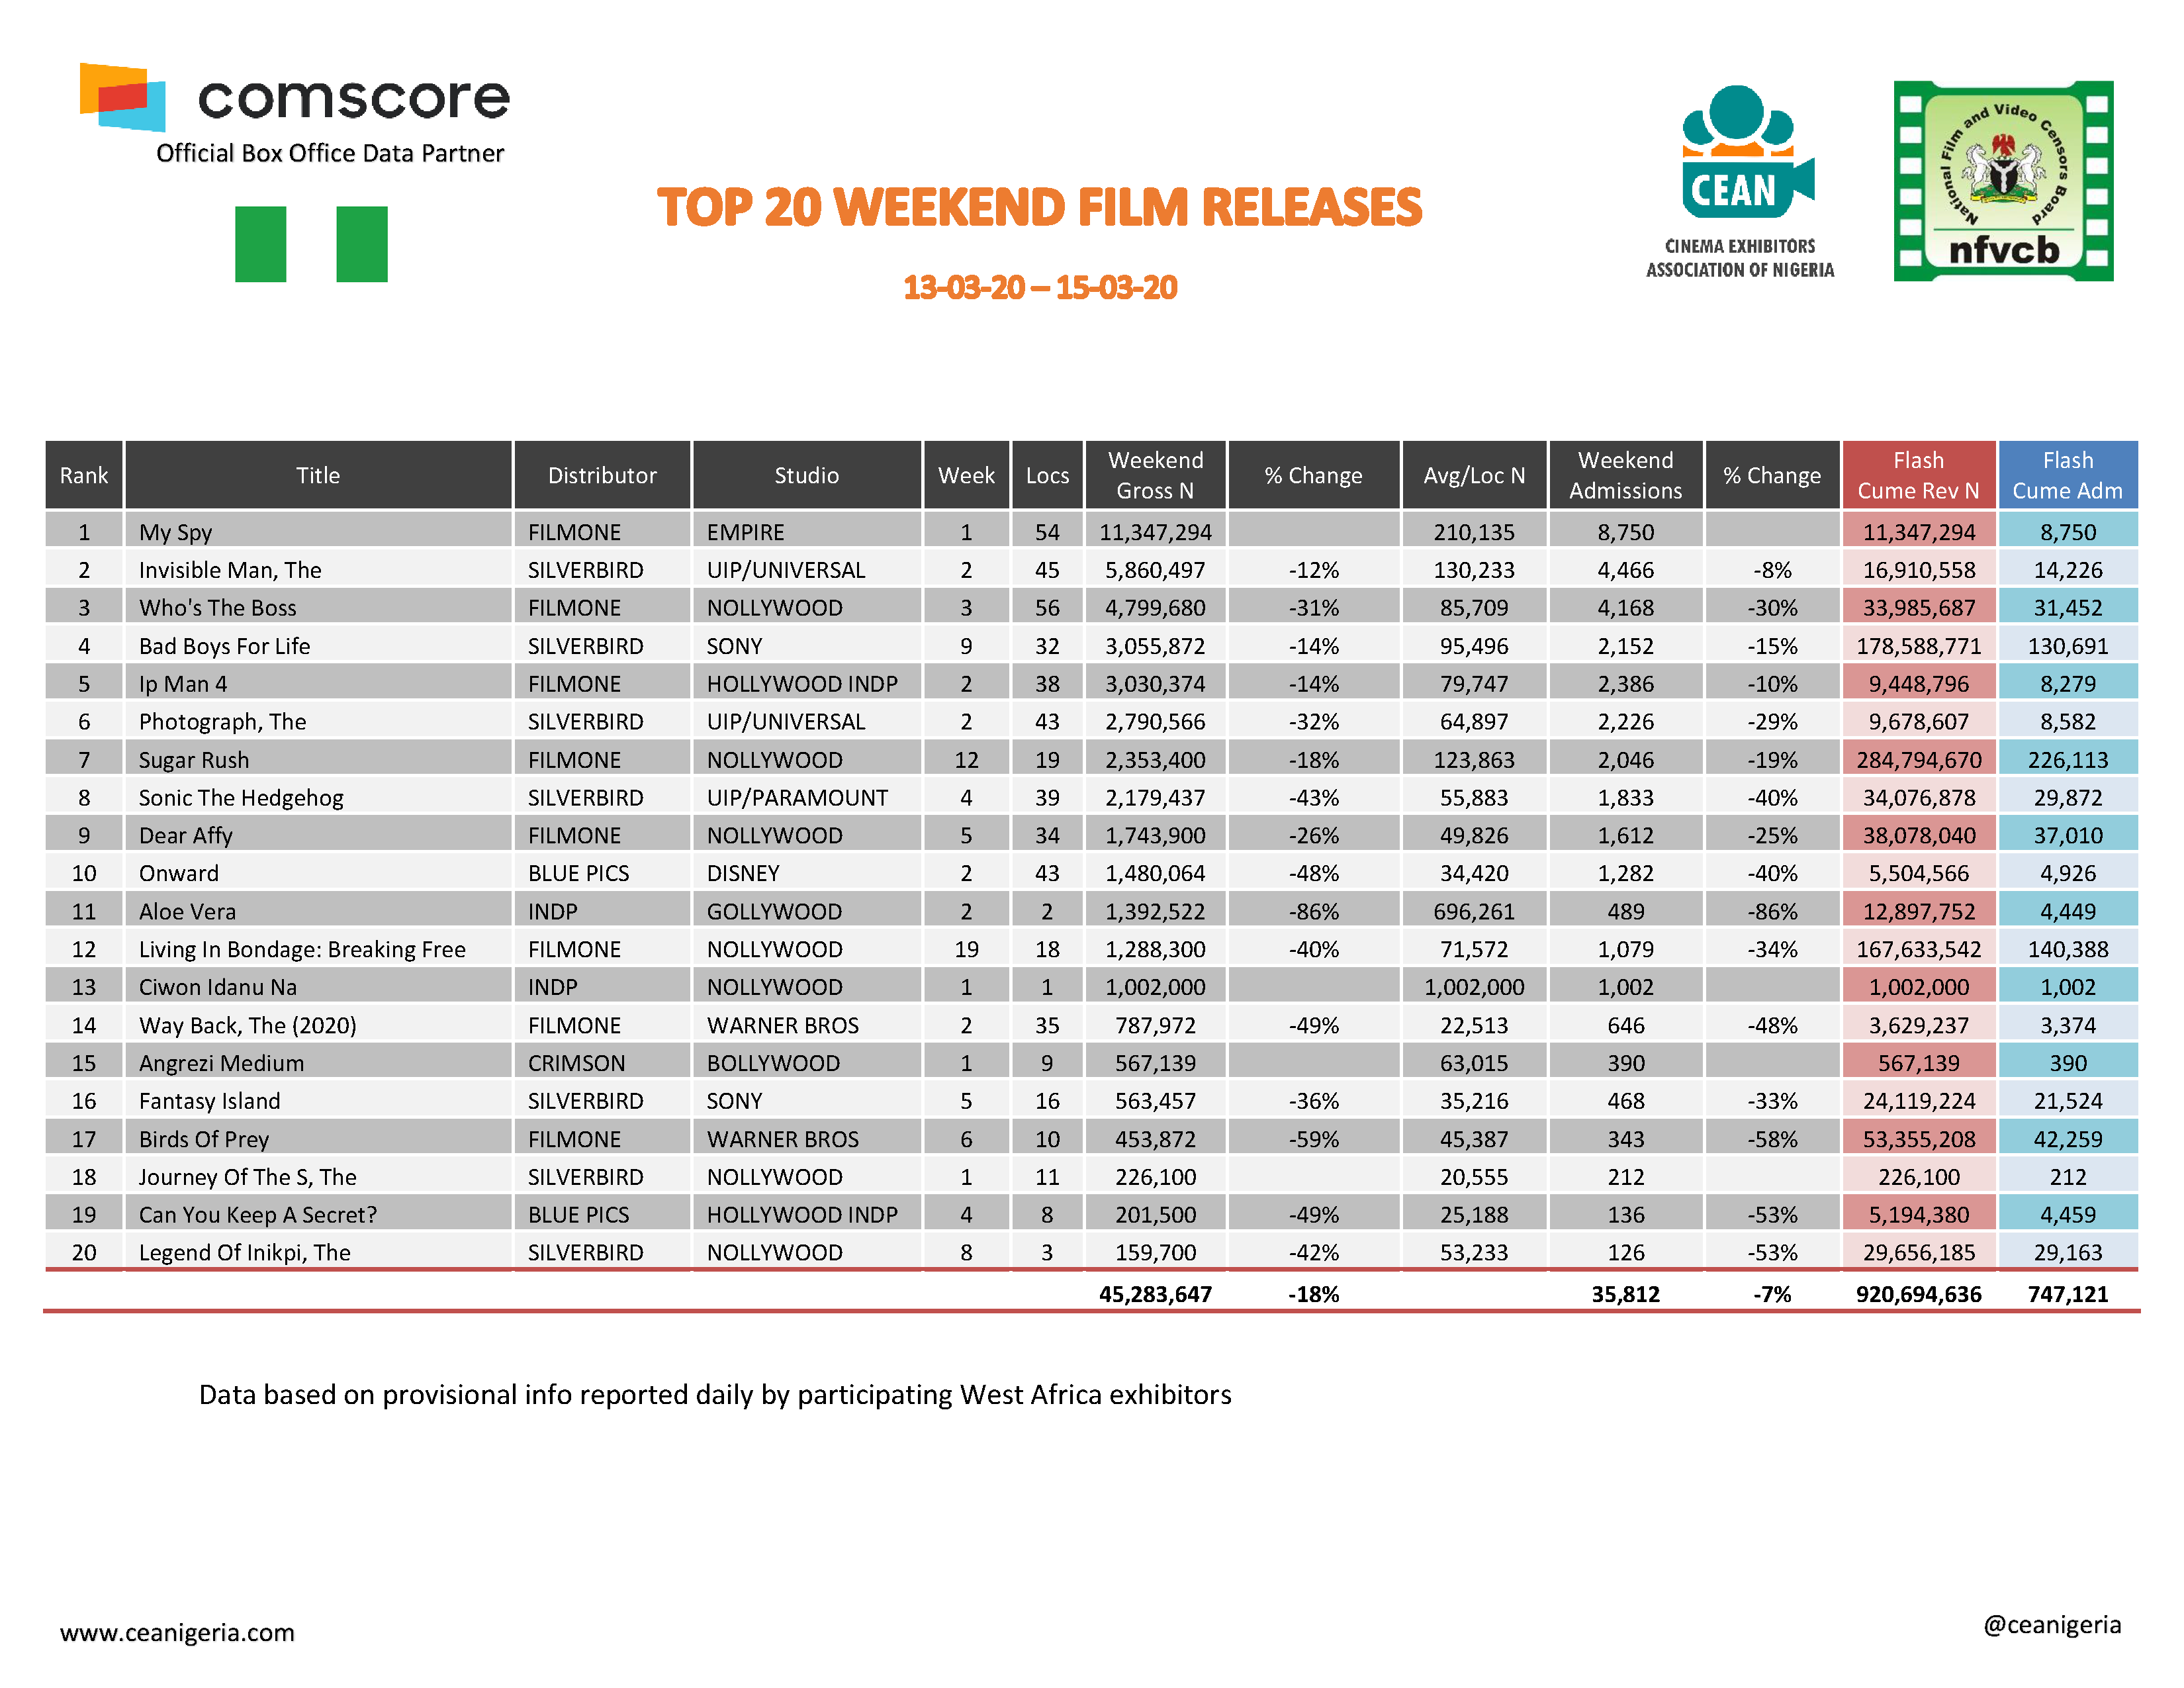 Top 20 films 13th 15th March 2020